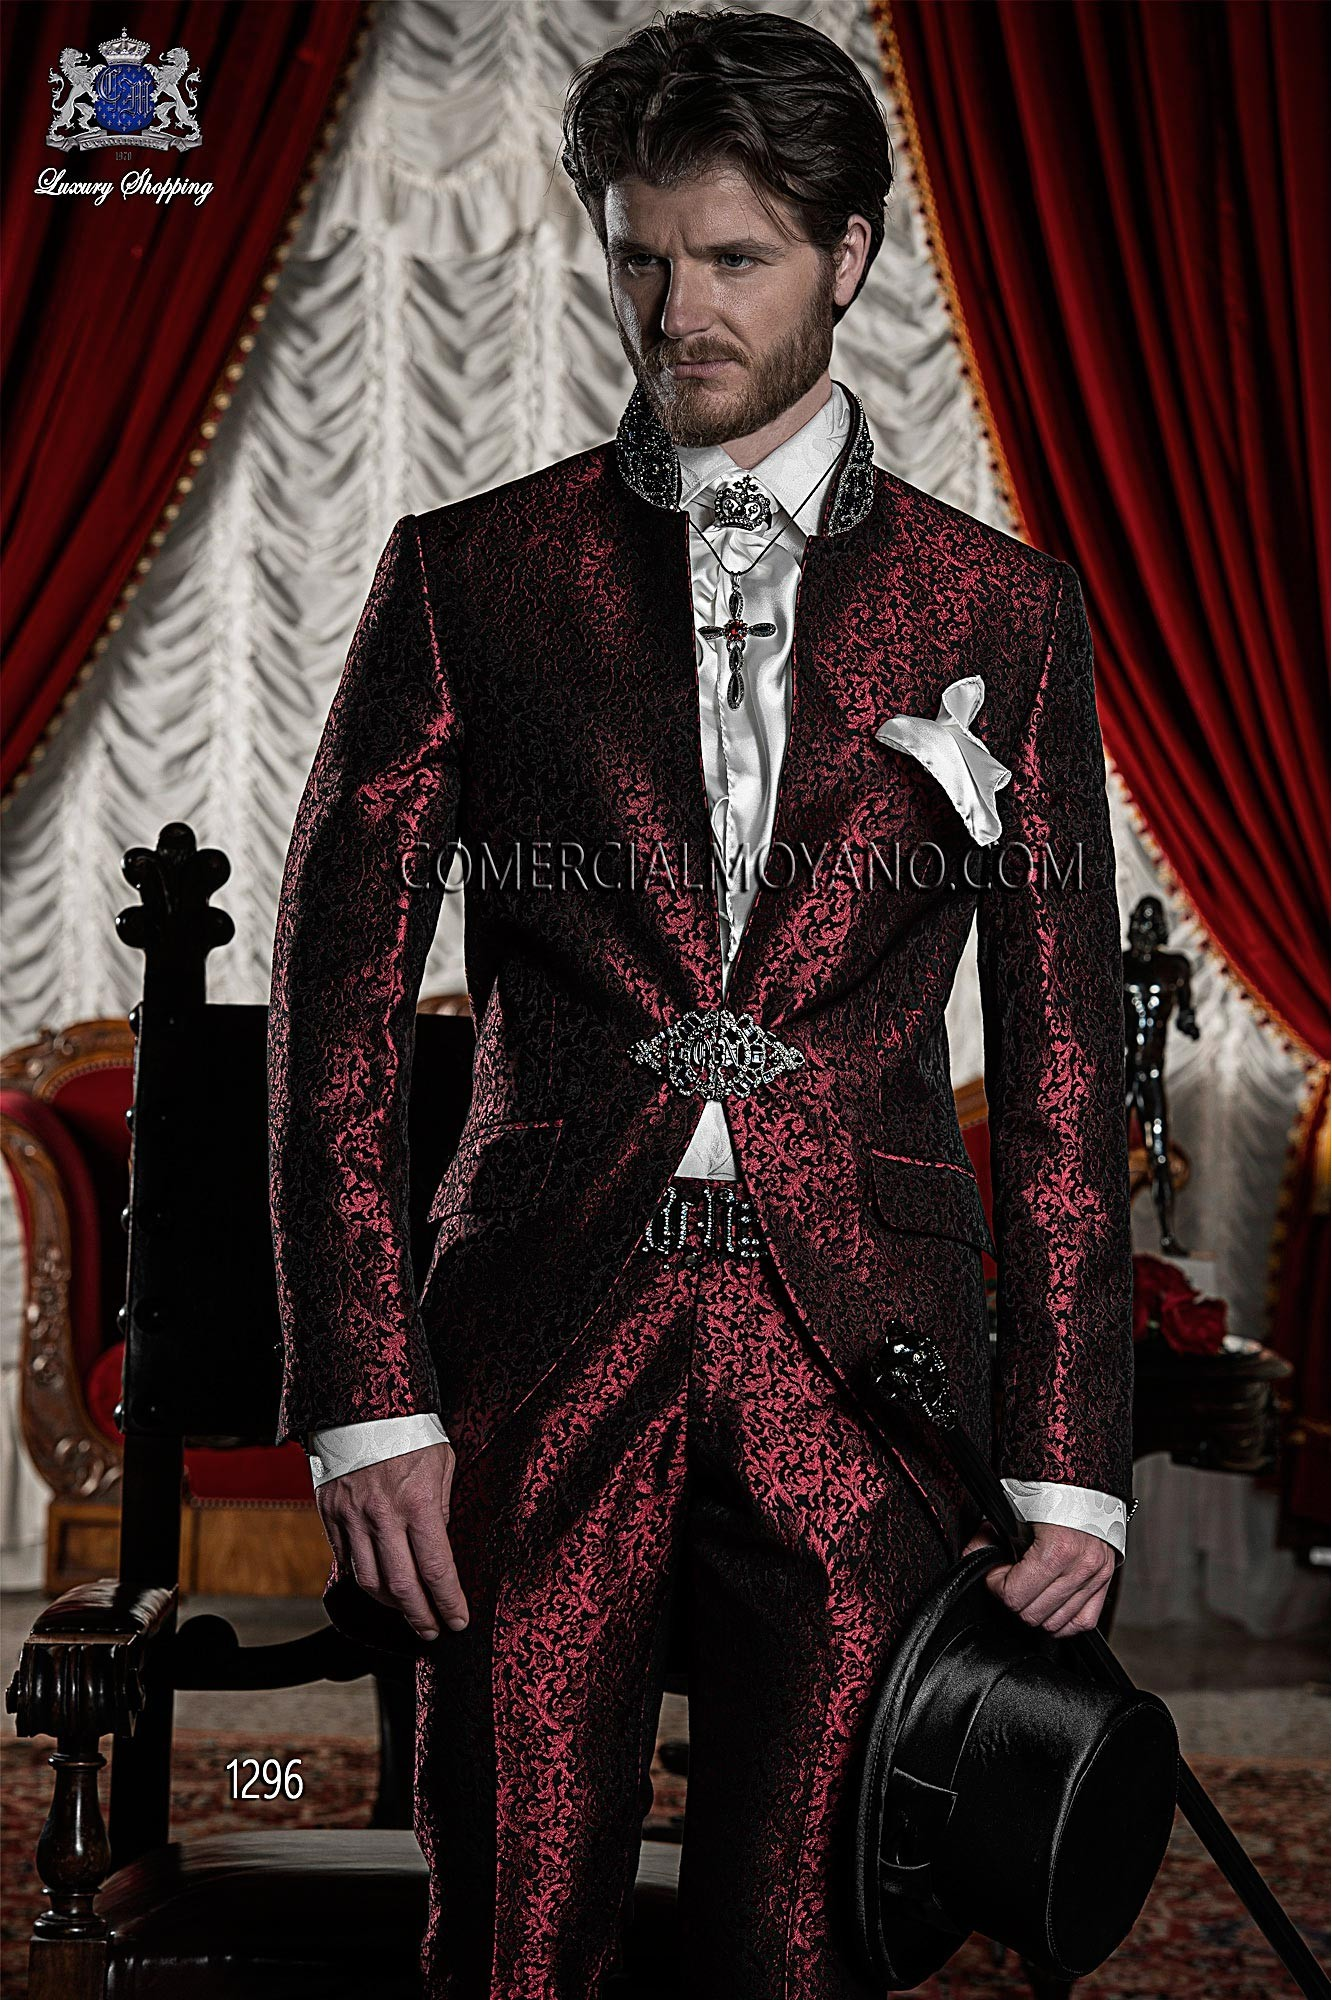 Italian bespoke red/black brocade short frock coat with Mao collar with crystal rhinestones, style 1296 Ottavio Nuccio Gala, 2015 Baroque collection.